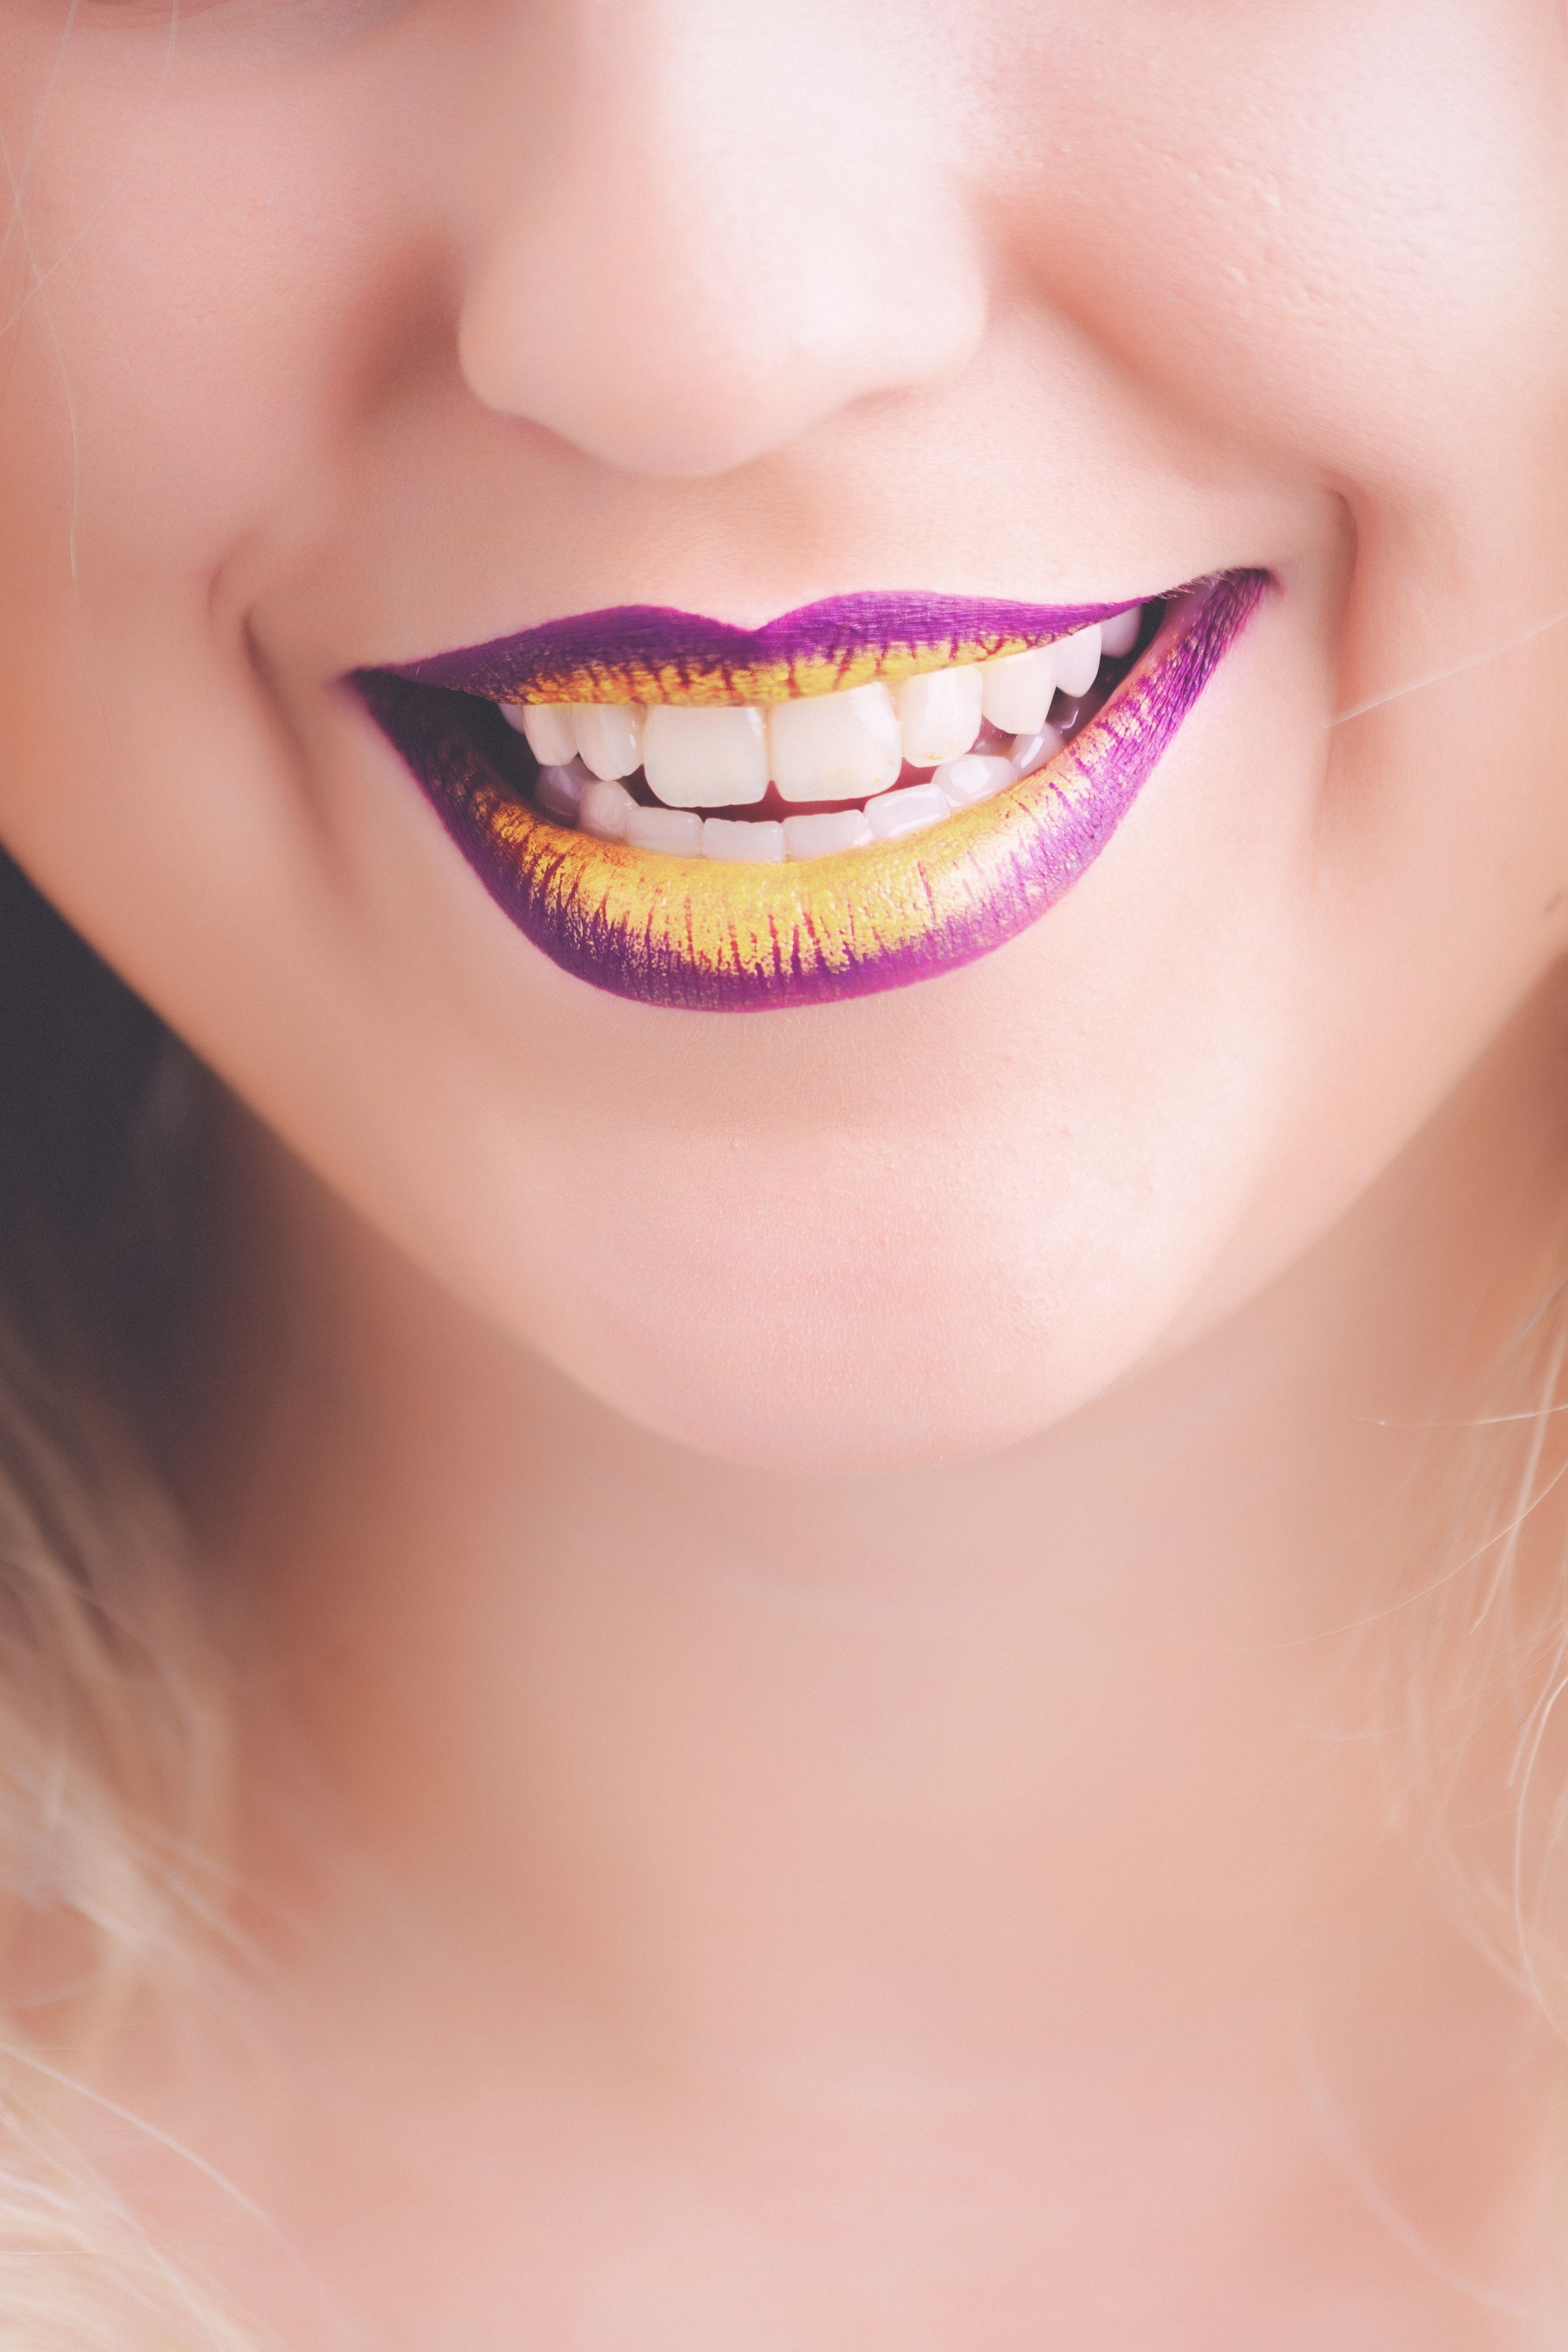 Woman showing her purple and yellow lipsticks photo